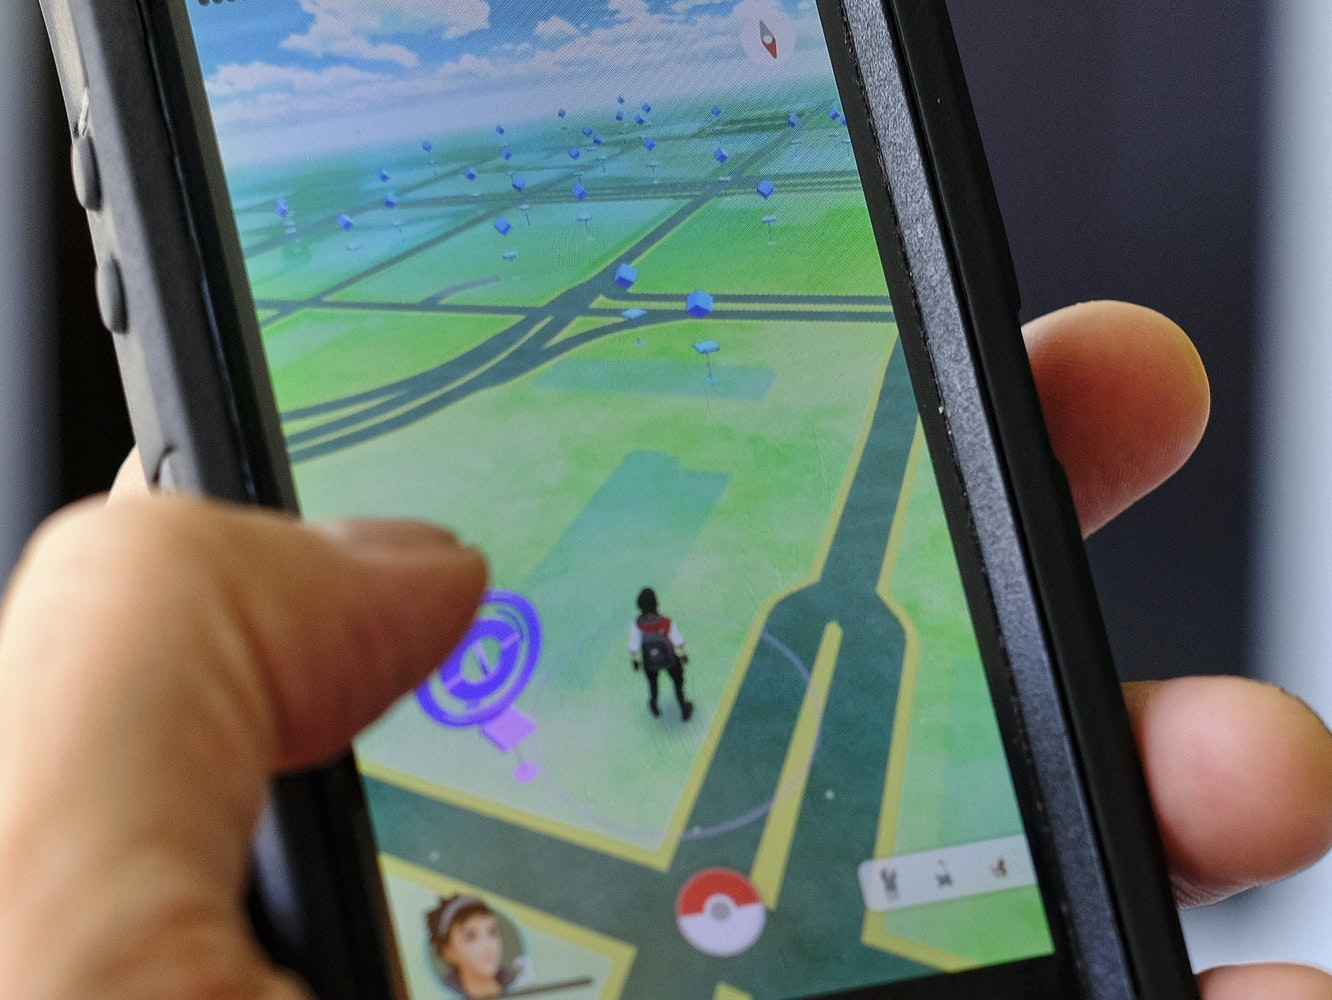 'Pokemon Go' Stops Will Increase by 10,500 With Sprint Deal